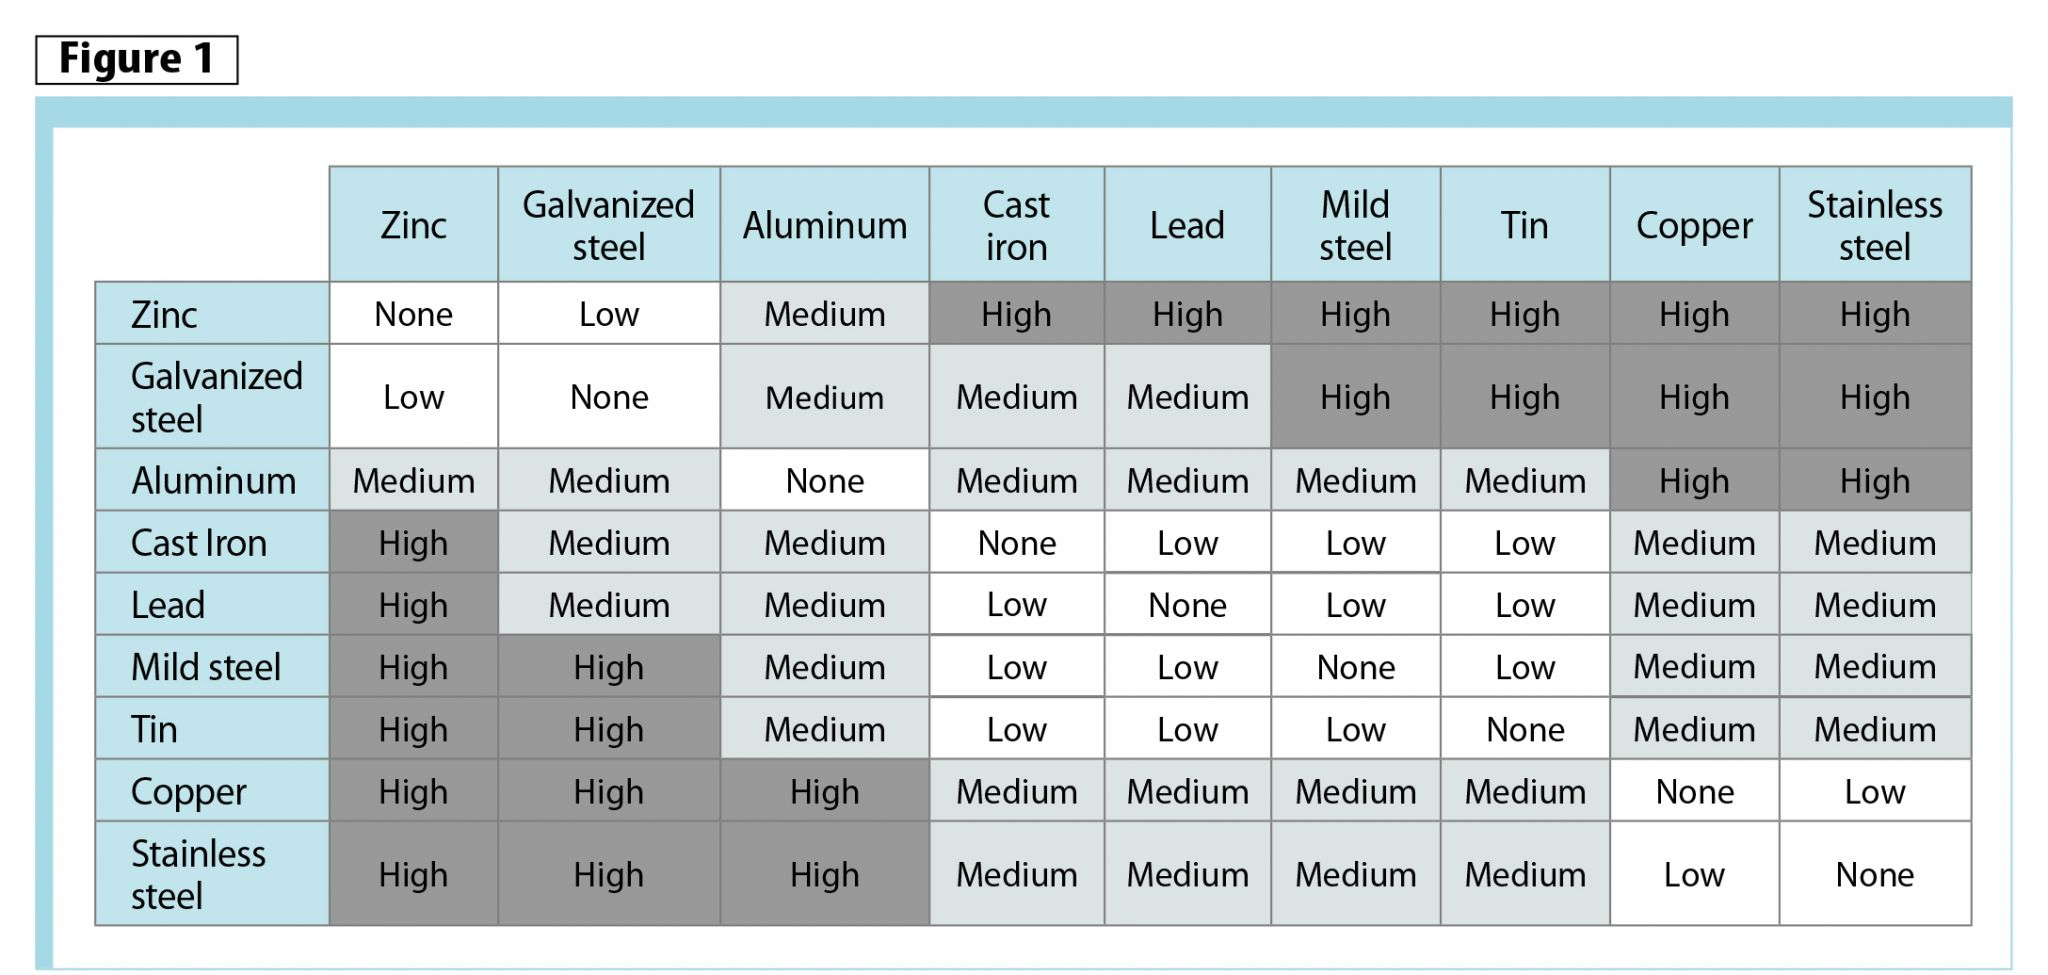 galvanic corrosion Galvanic series chart in the galvanic series chart below, any element to the left of the alloy you want to protect is anodic to it and can protect its sacrificially, while any element to the right is cathodic to it and can cause it to corrode galvanically.